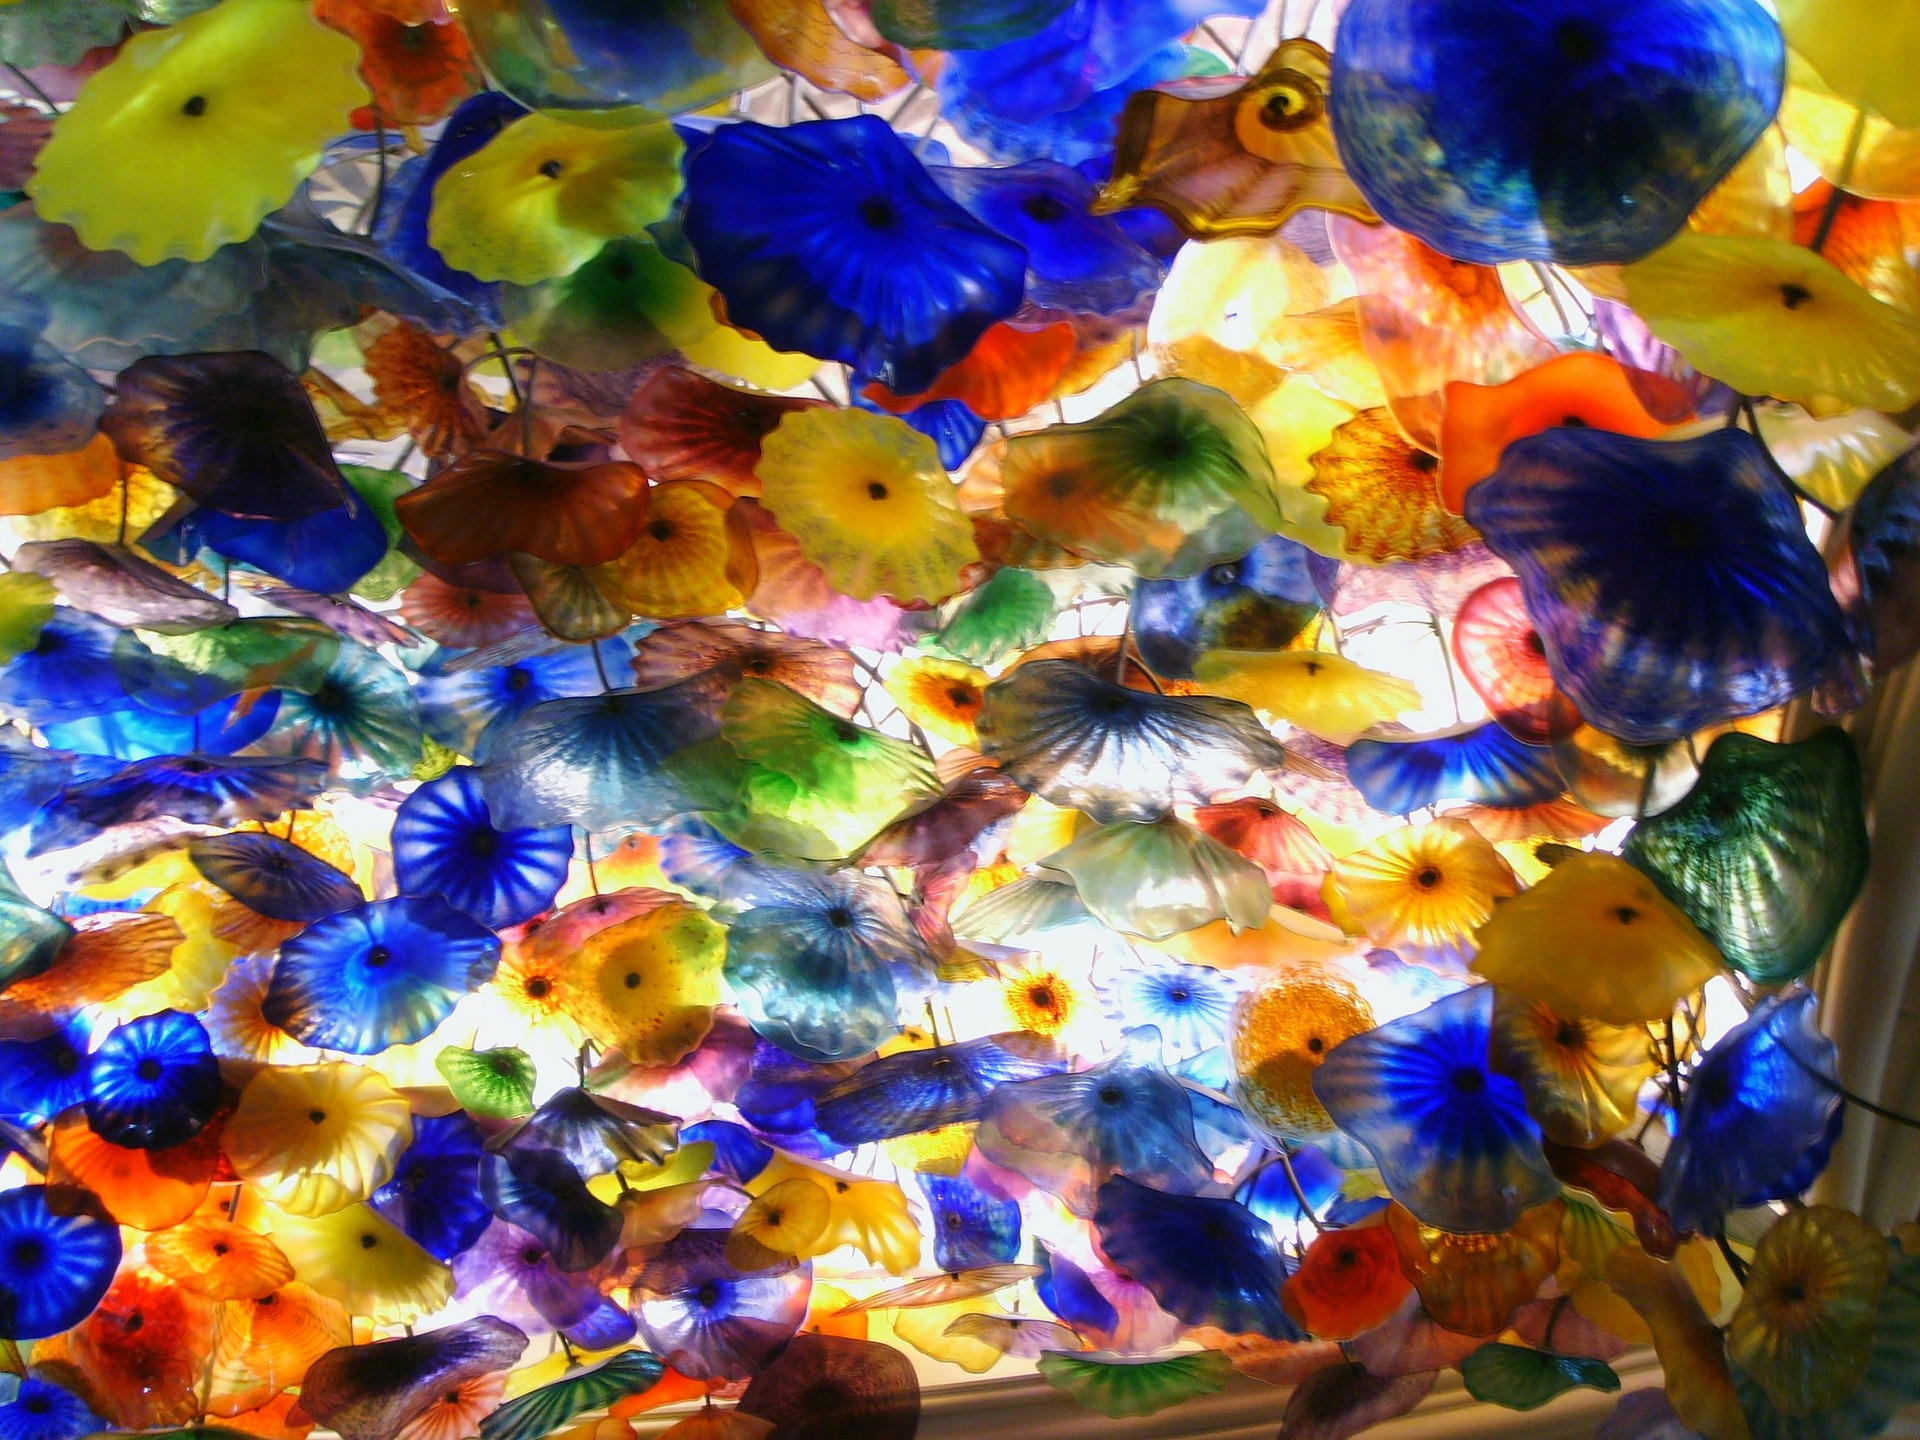 chihuly-glass-sculpture-106780_1920